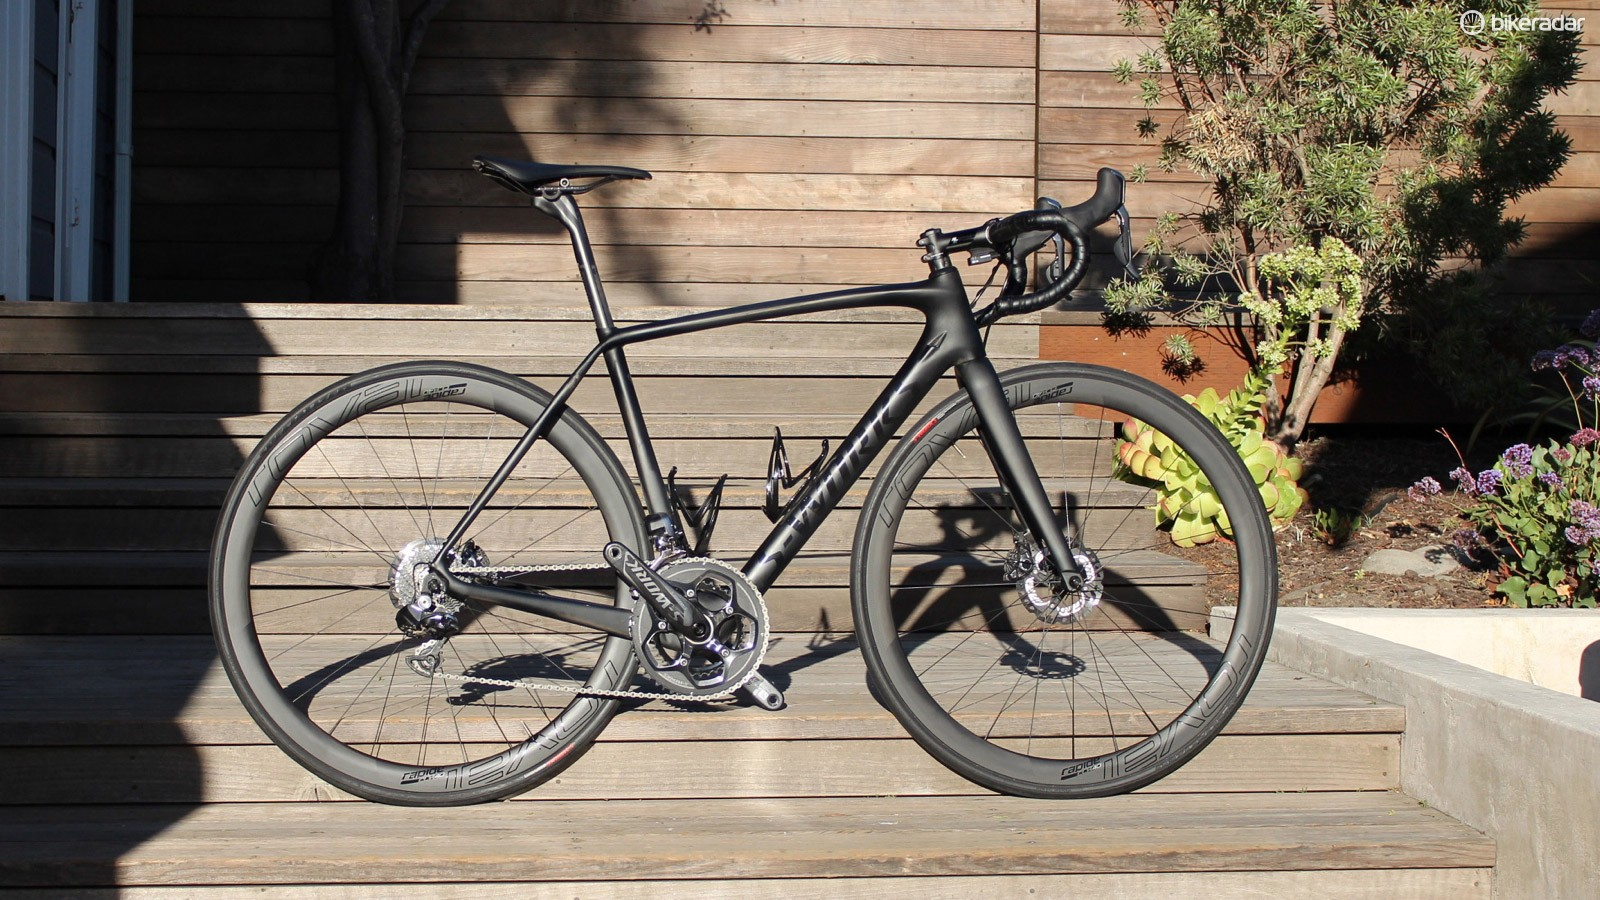 The Specialized Tarmac Disc is the first true road race bike with discs from the California company, which already had the Roubaix Disc endurance bike